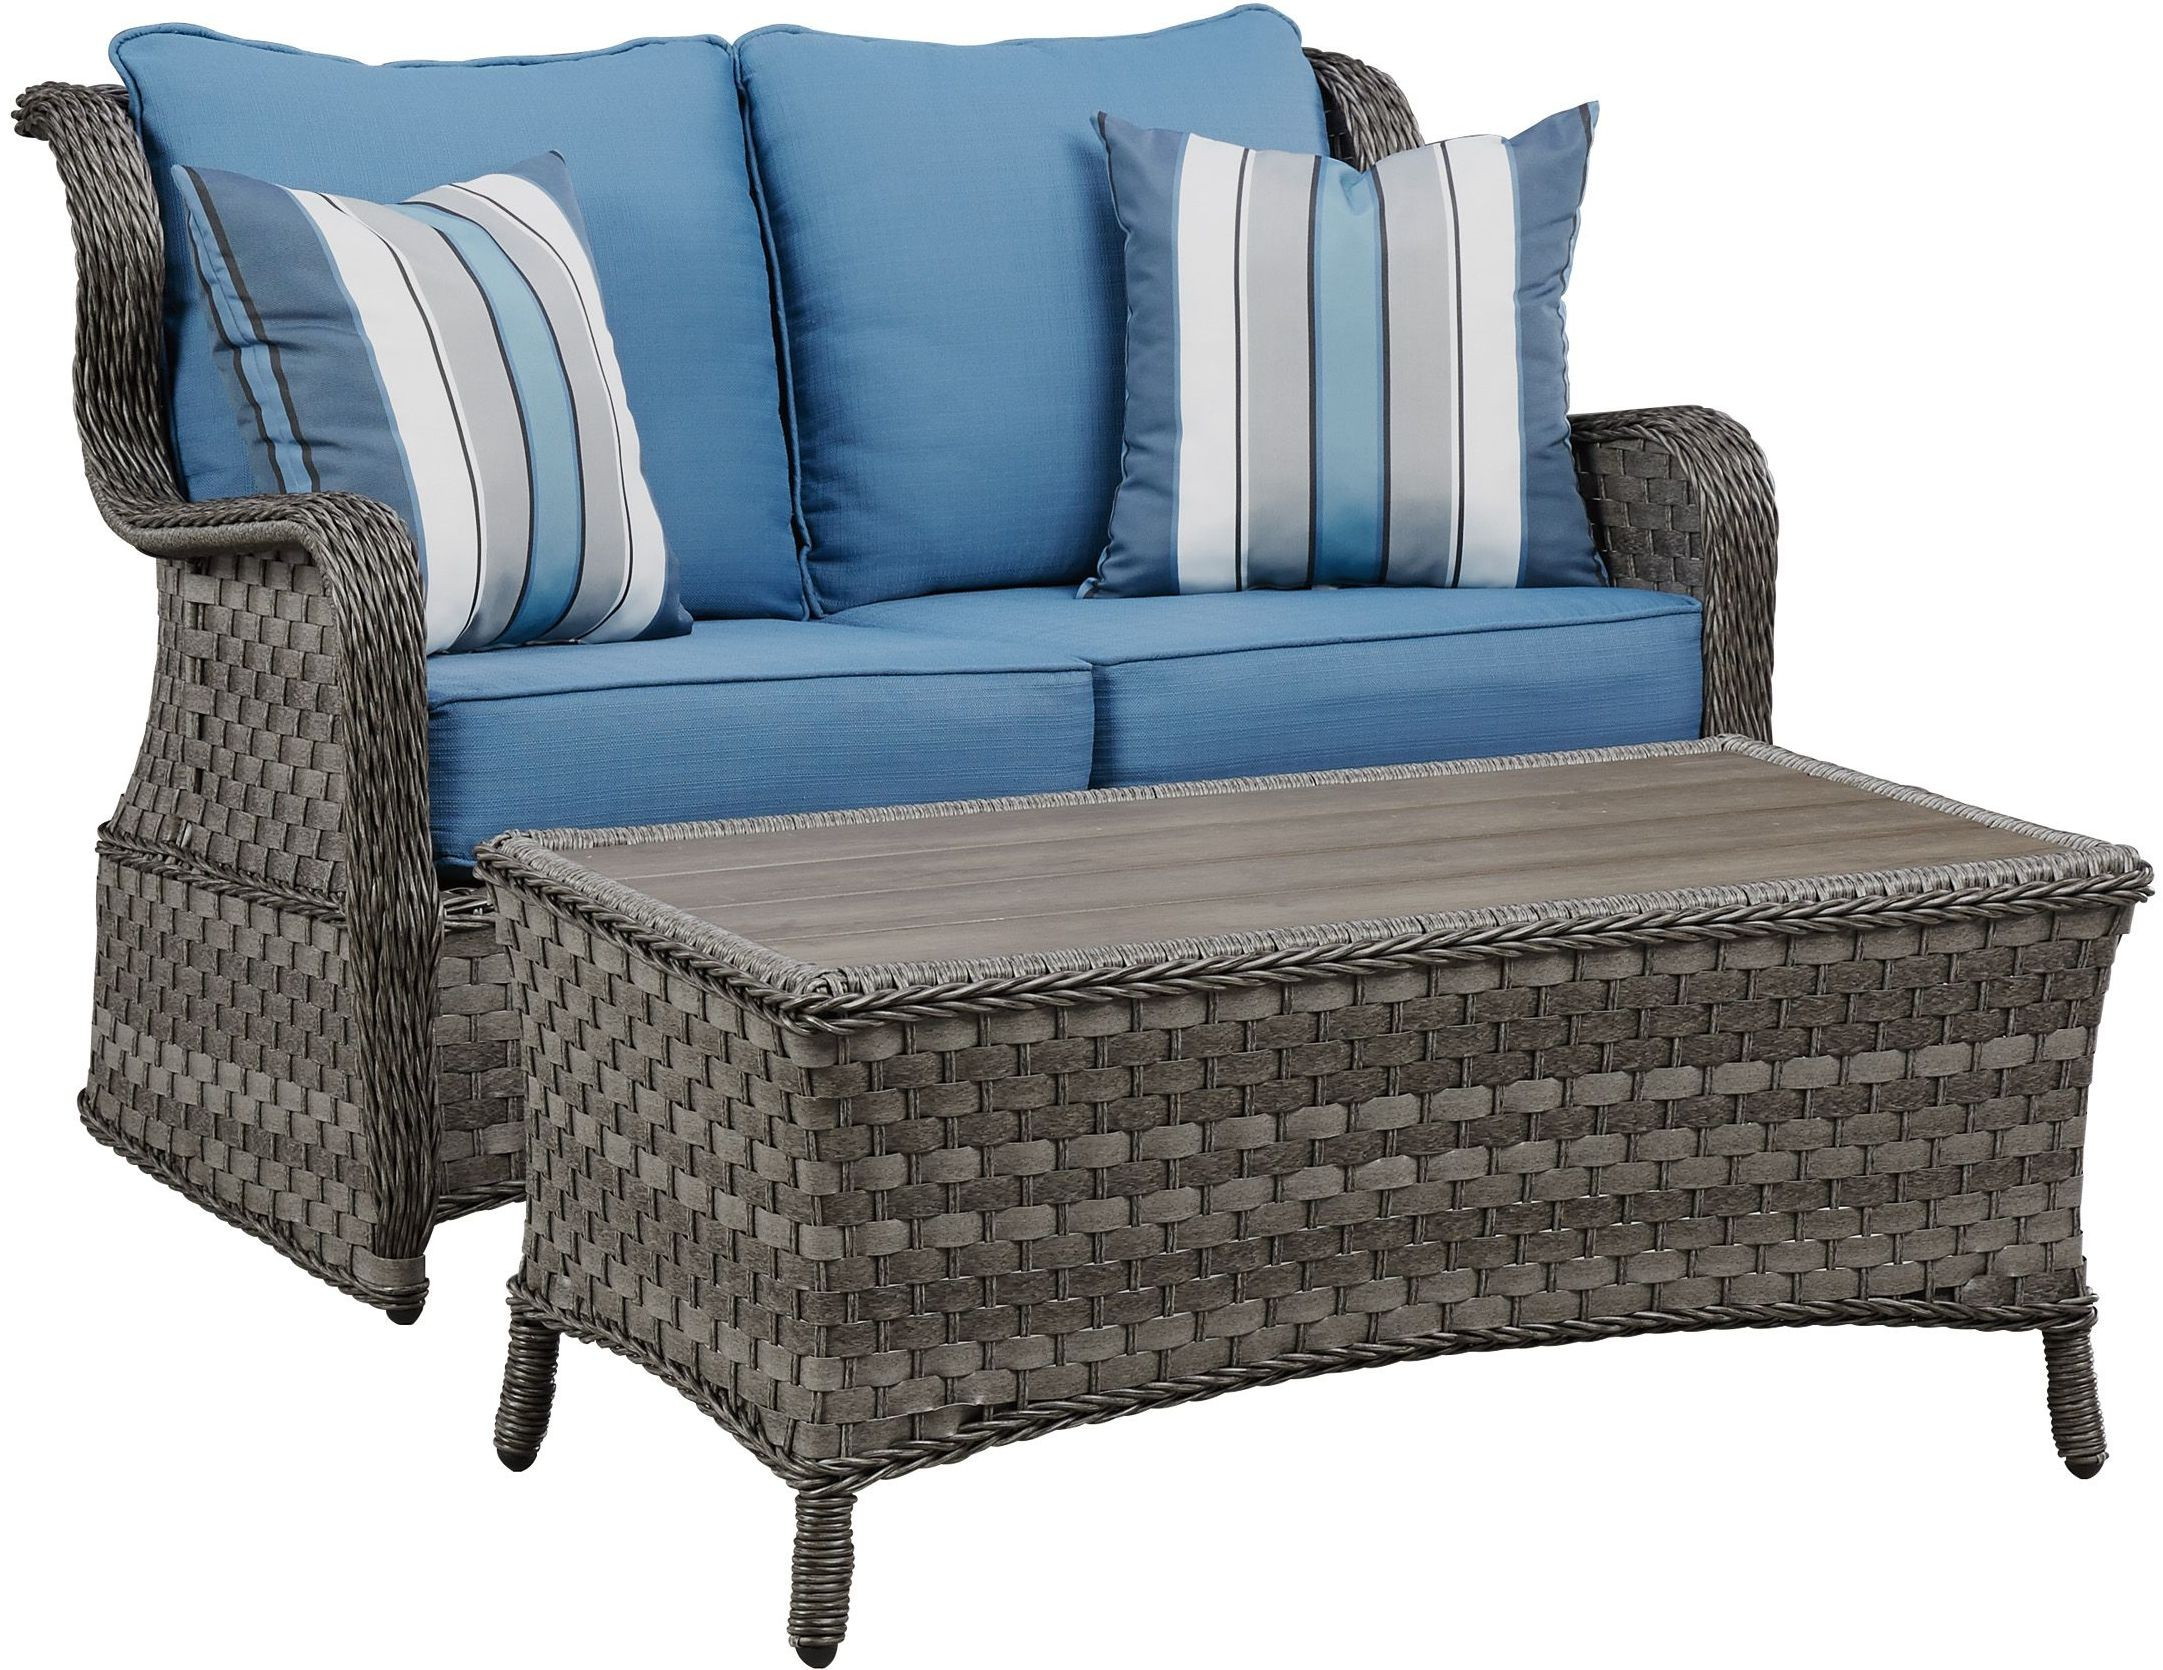 Abbots Court Blue and Gray Outdoor Conversation Set Media Gallery 5